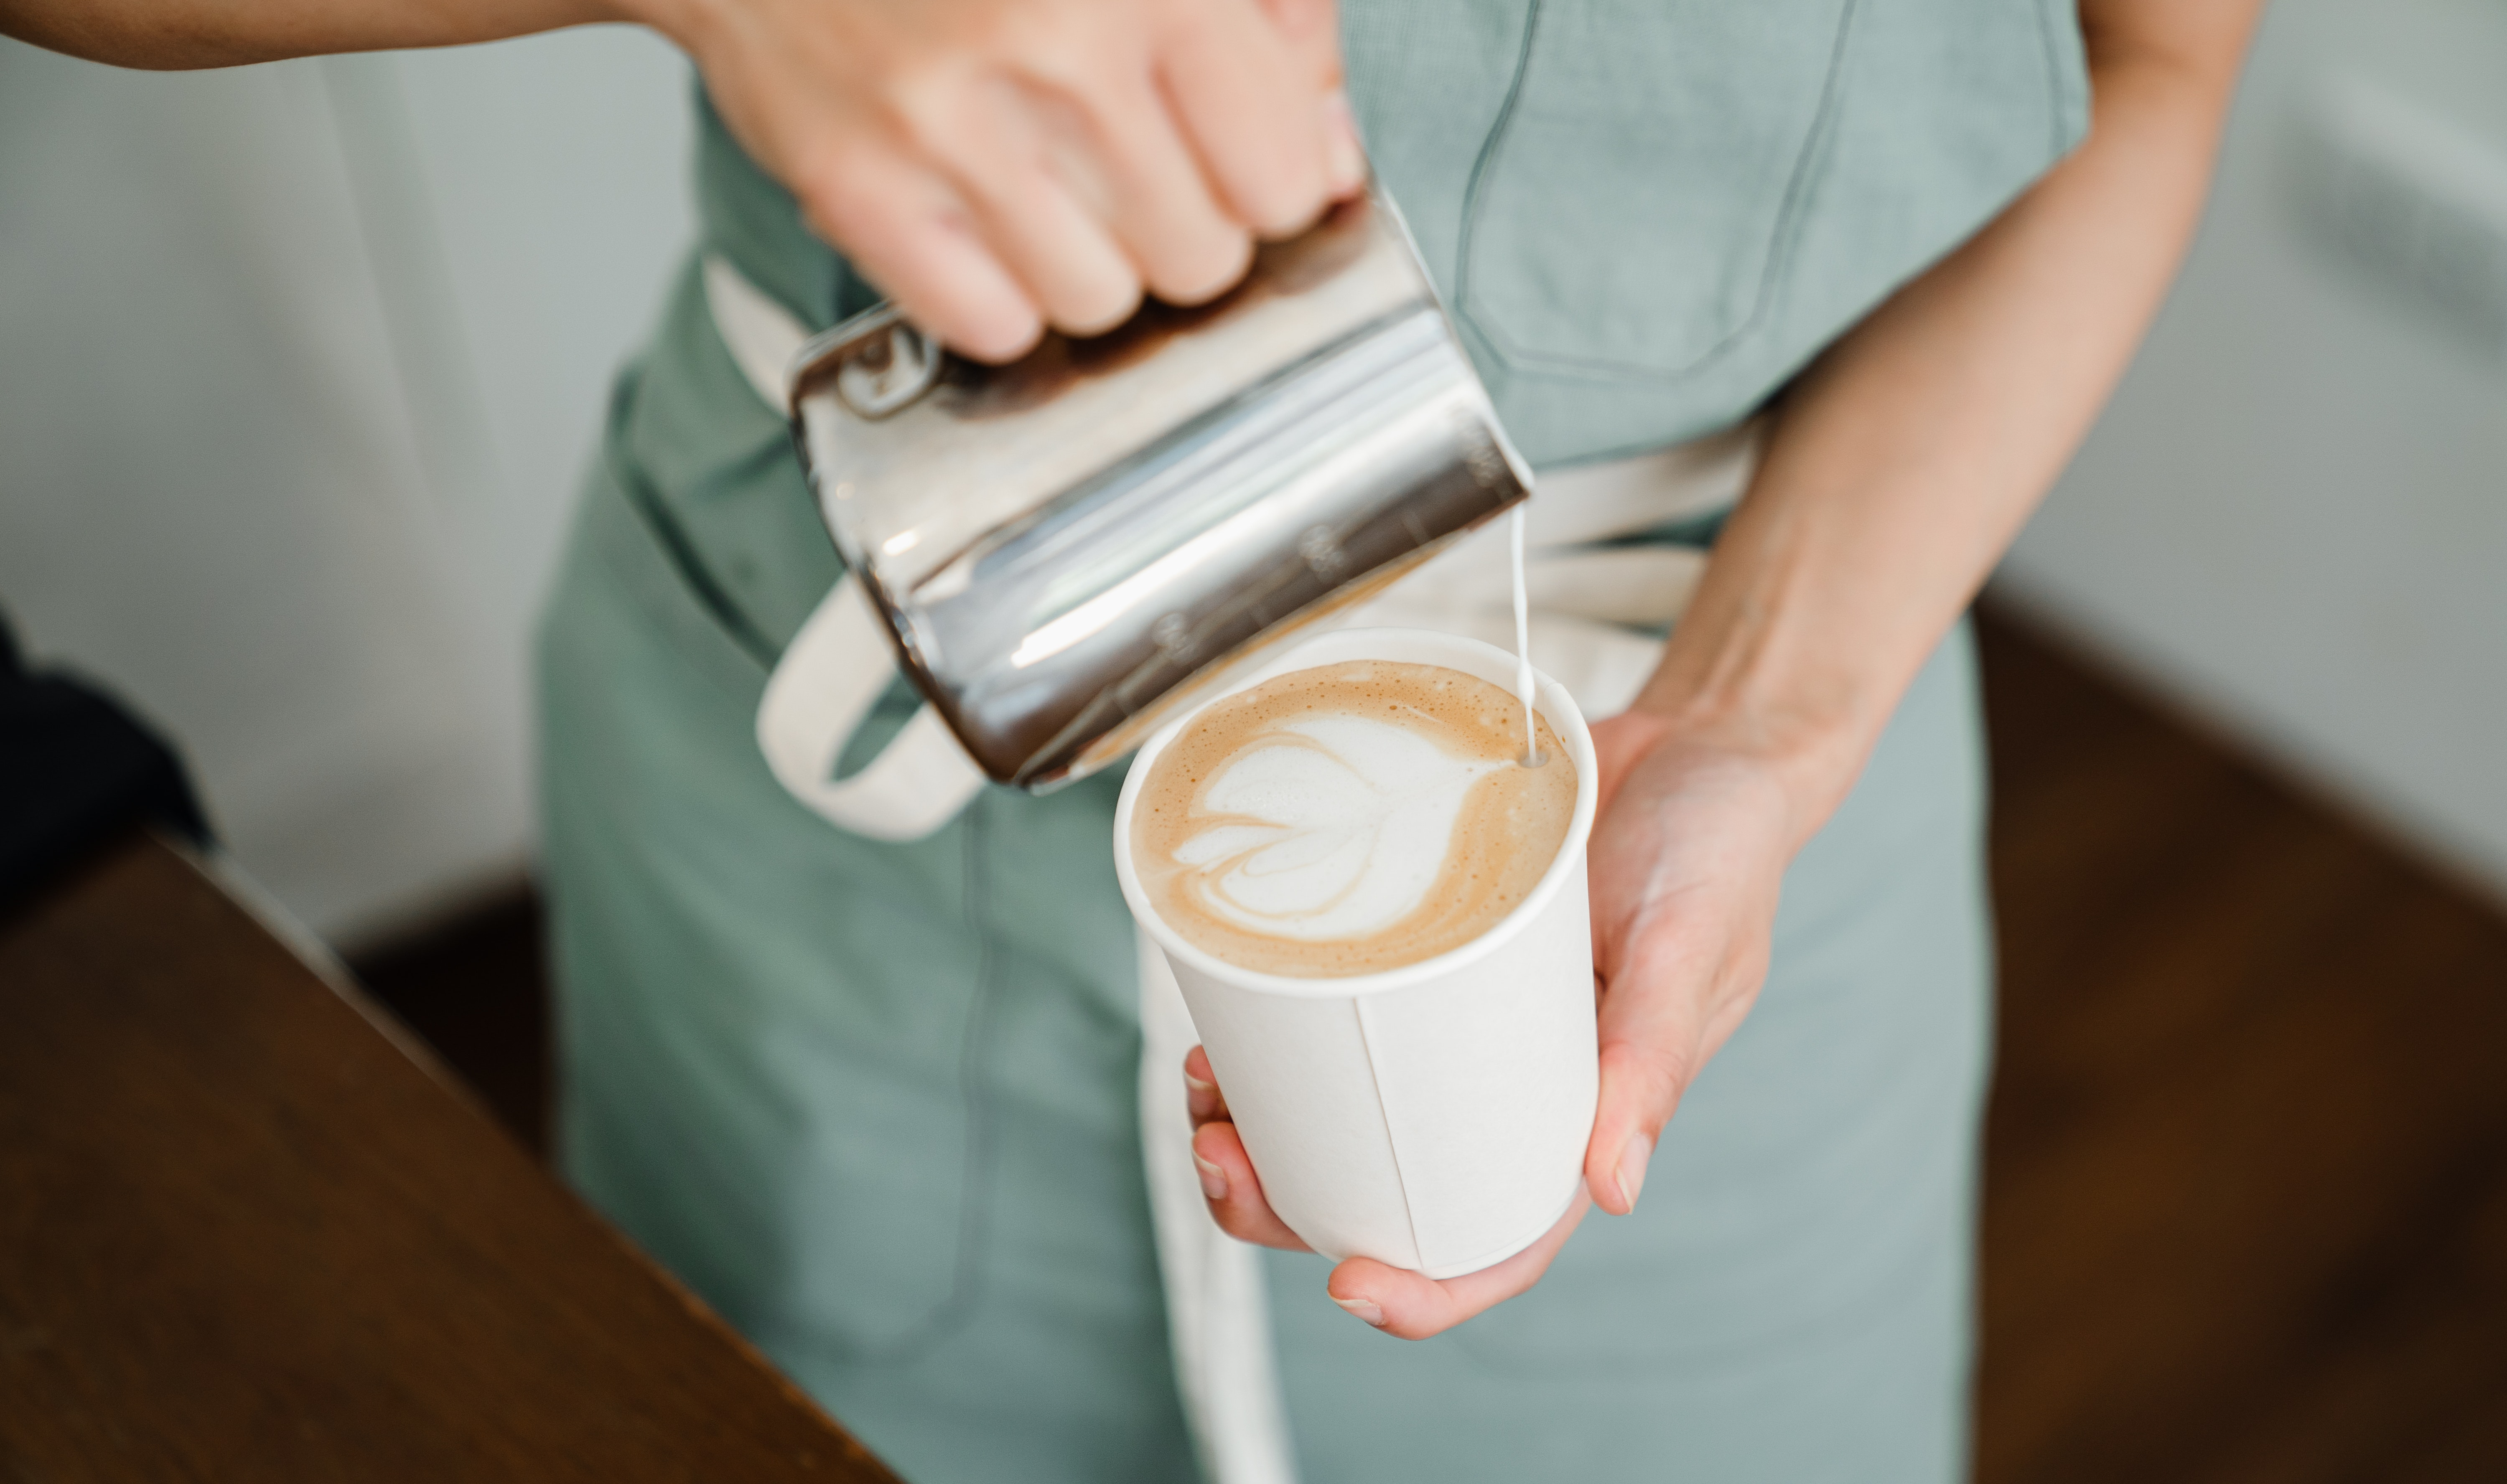 Latte Art By Crop Faceless Person In Coffee Shop Free Stock Photo